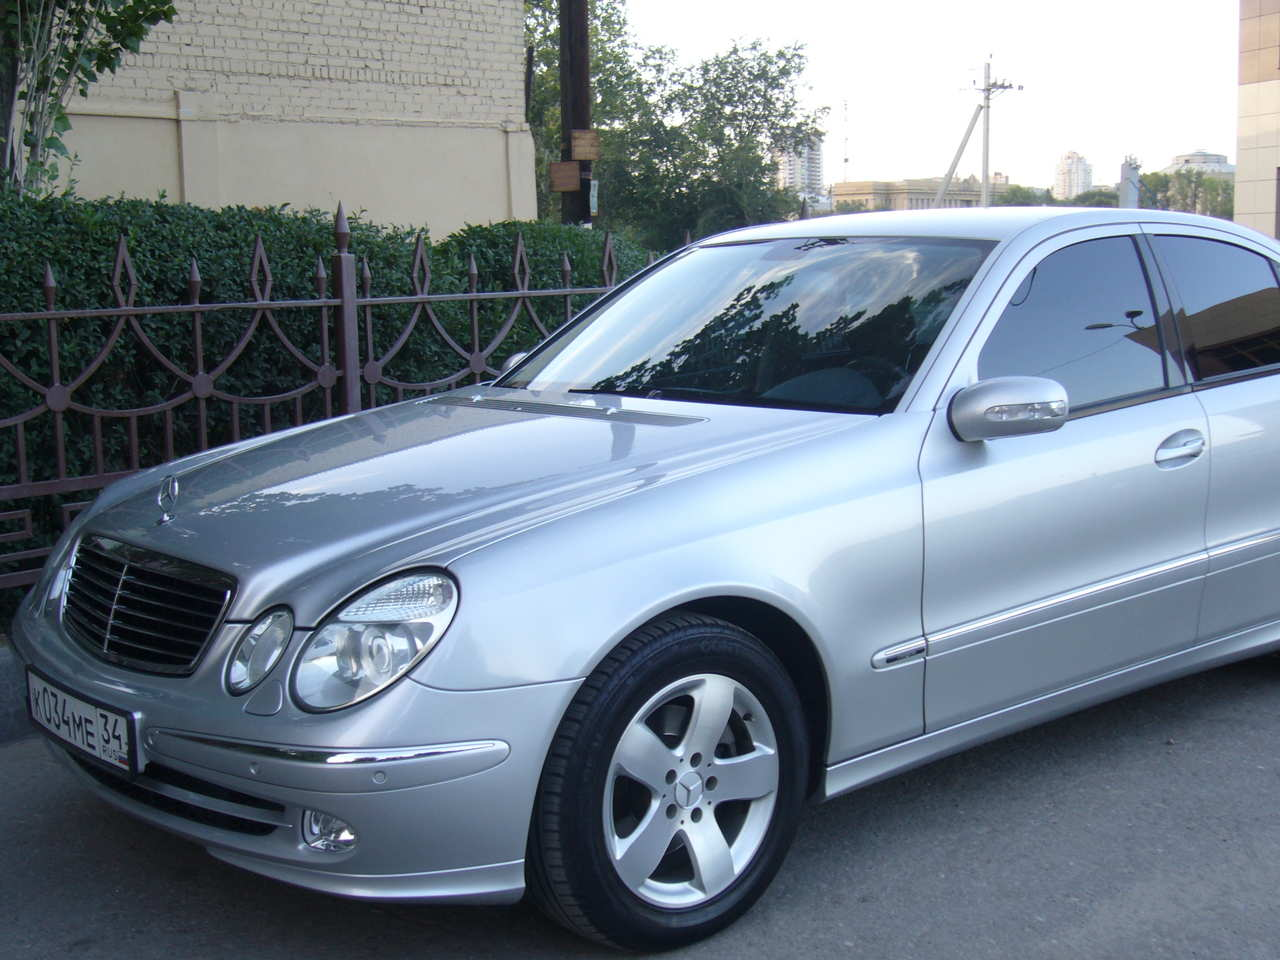 2005 mercedes benz e class photos 2 0 gasoline fr or rr for Mercedes benz 2005 e class